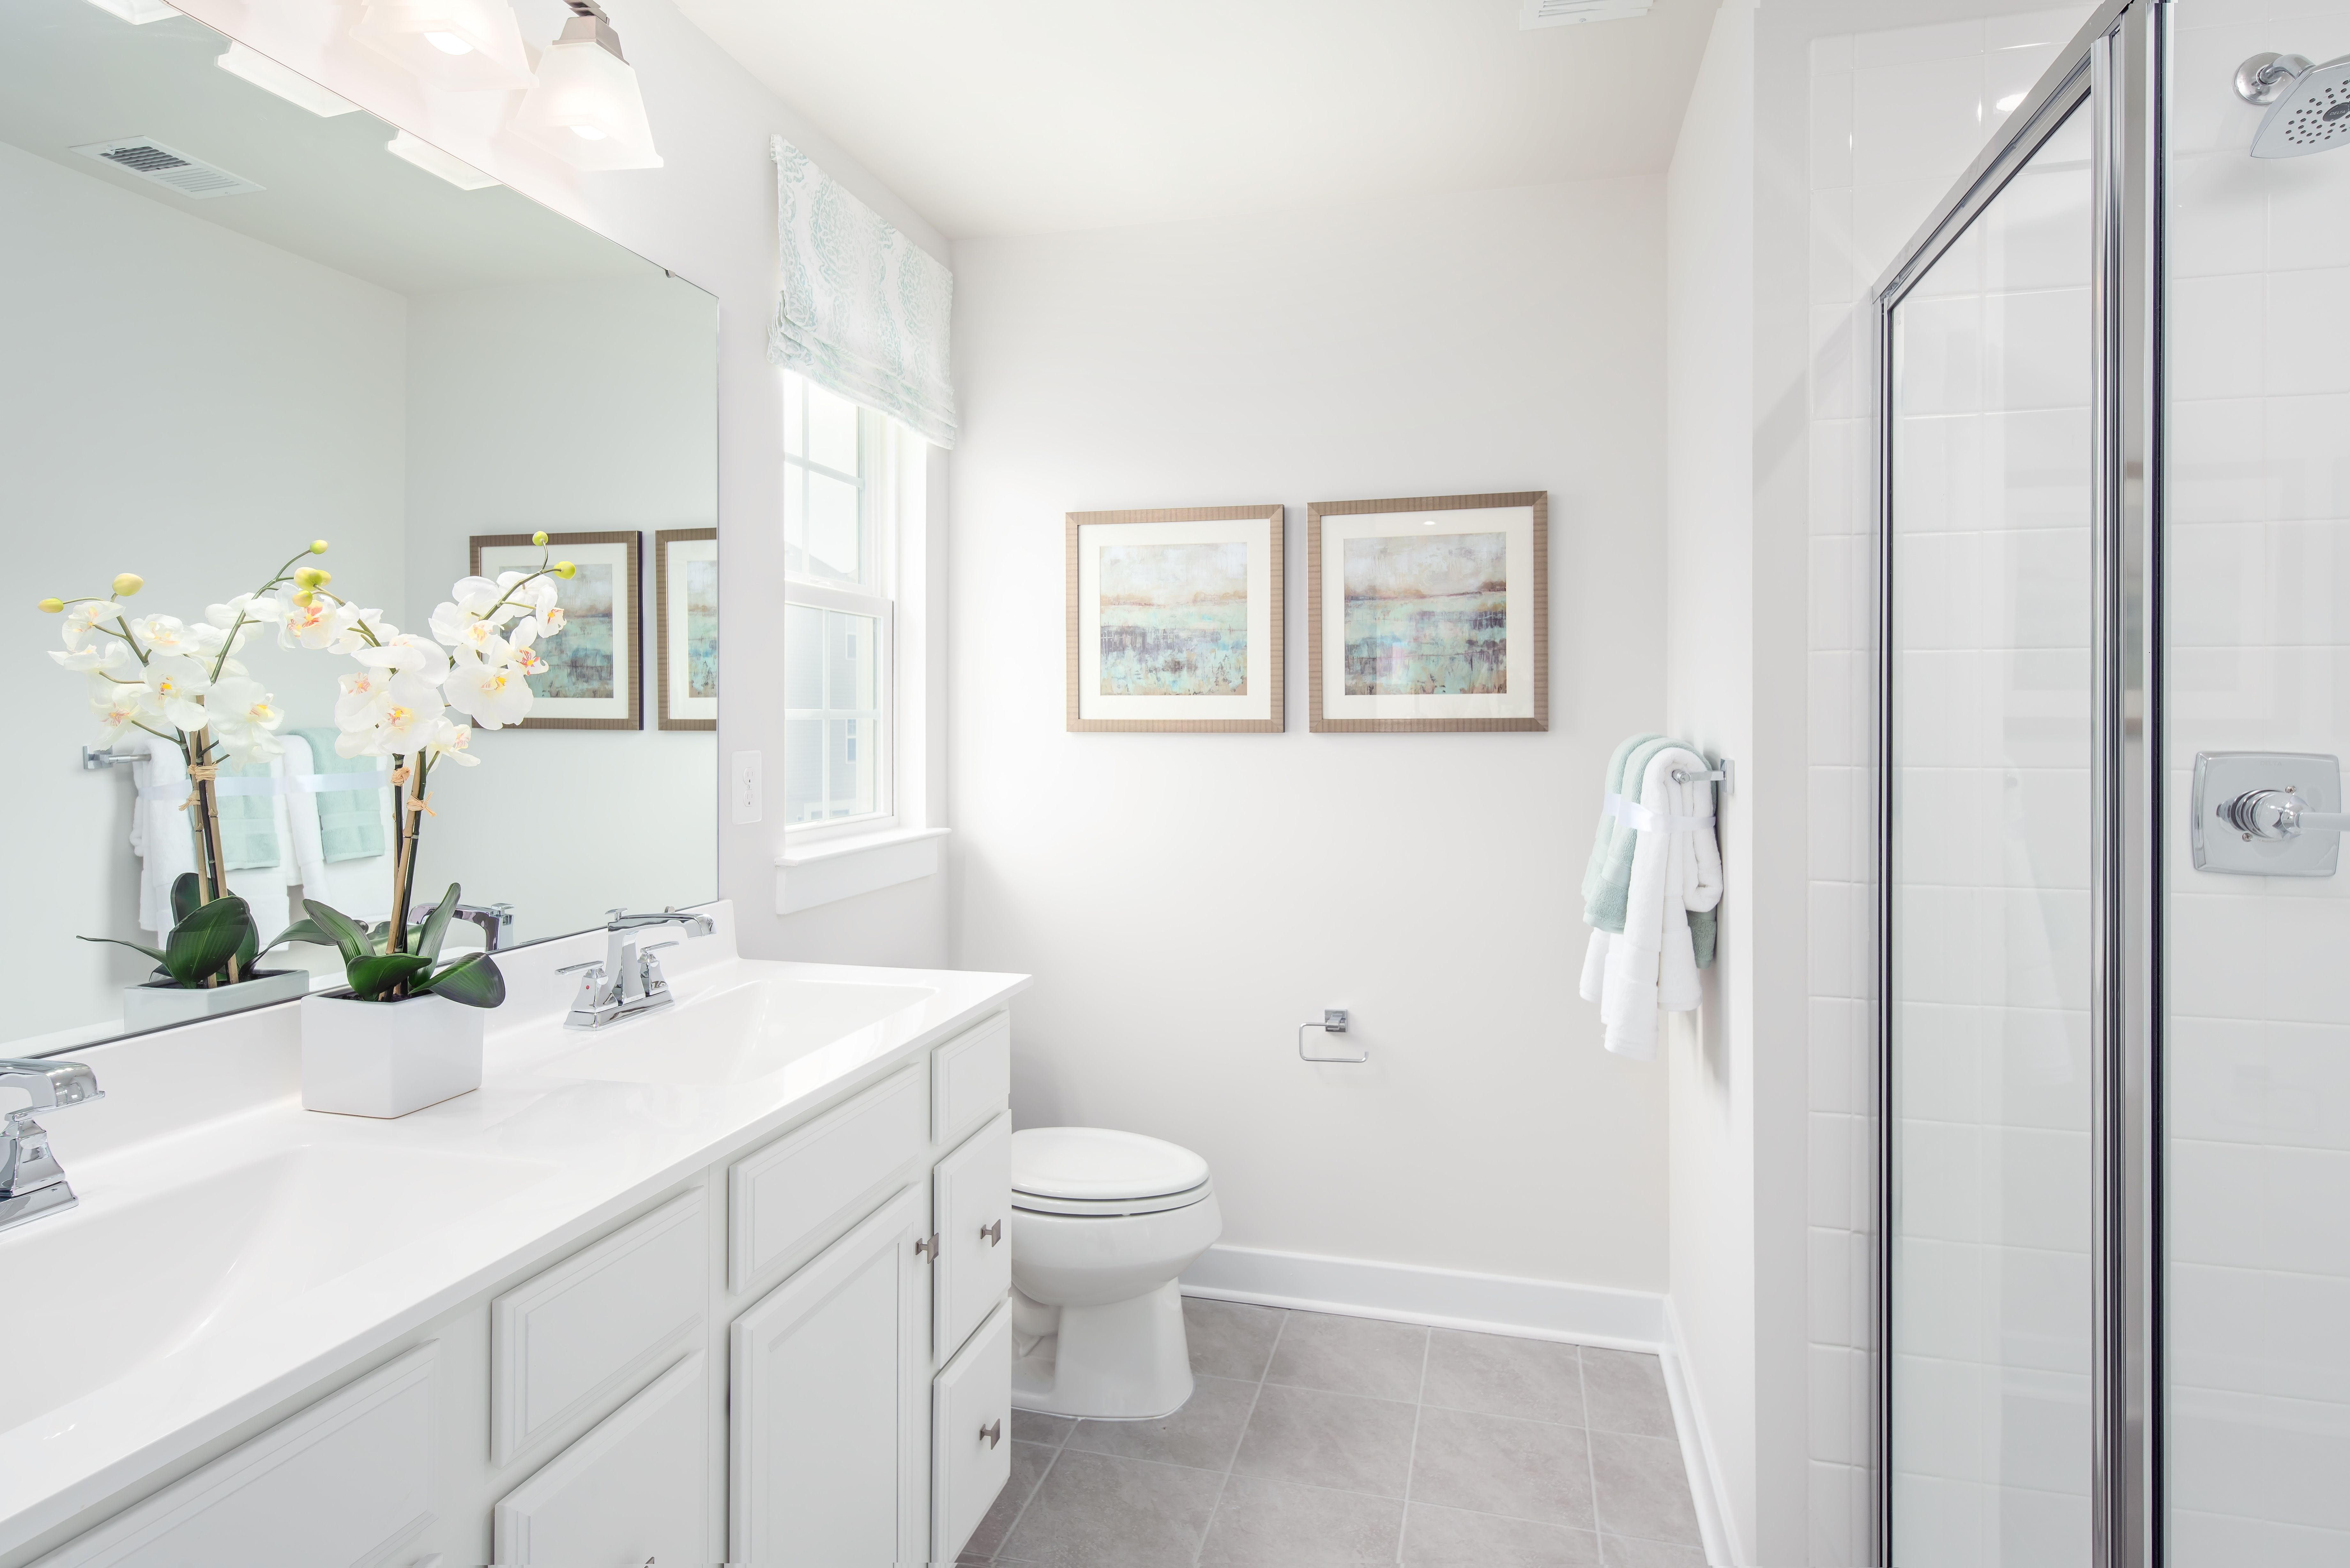 Bathroom featured in the Ballenger By Ryan Homes in Washington, VA